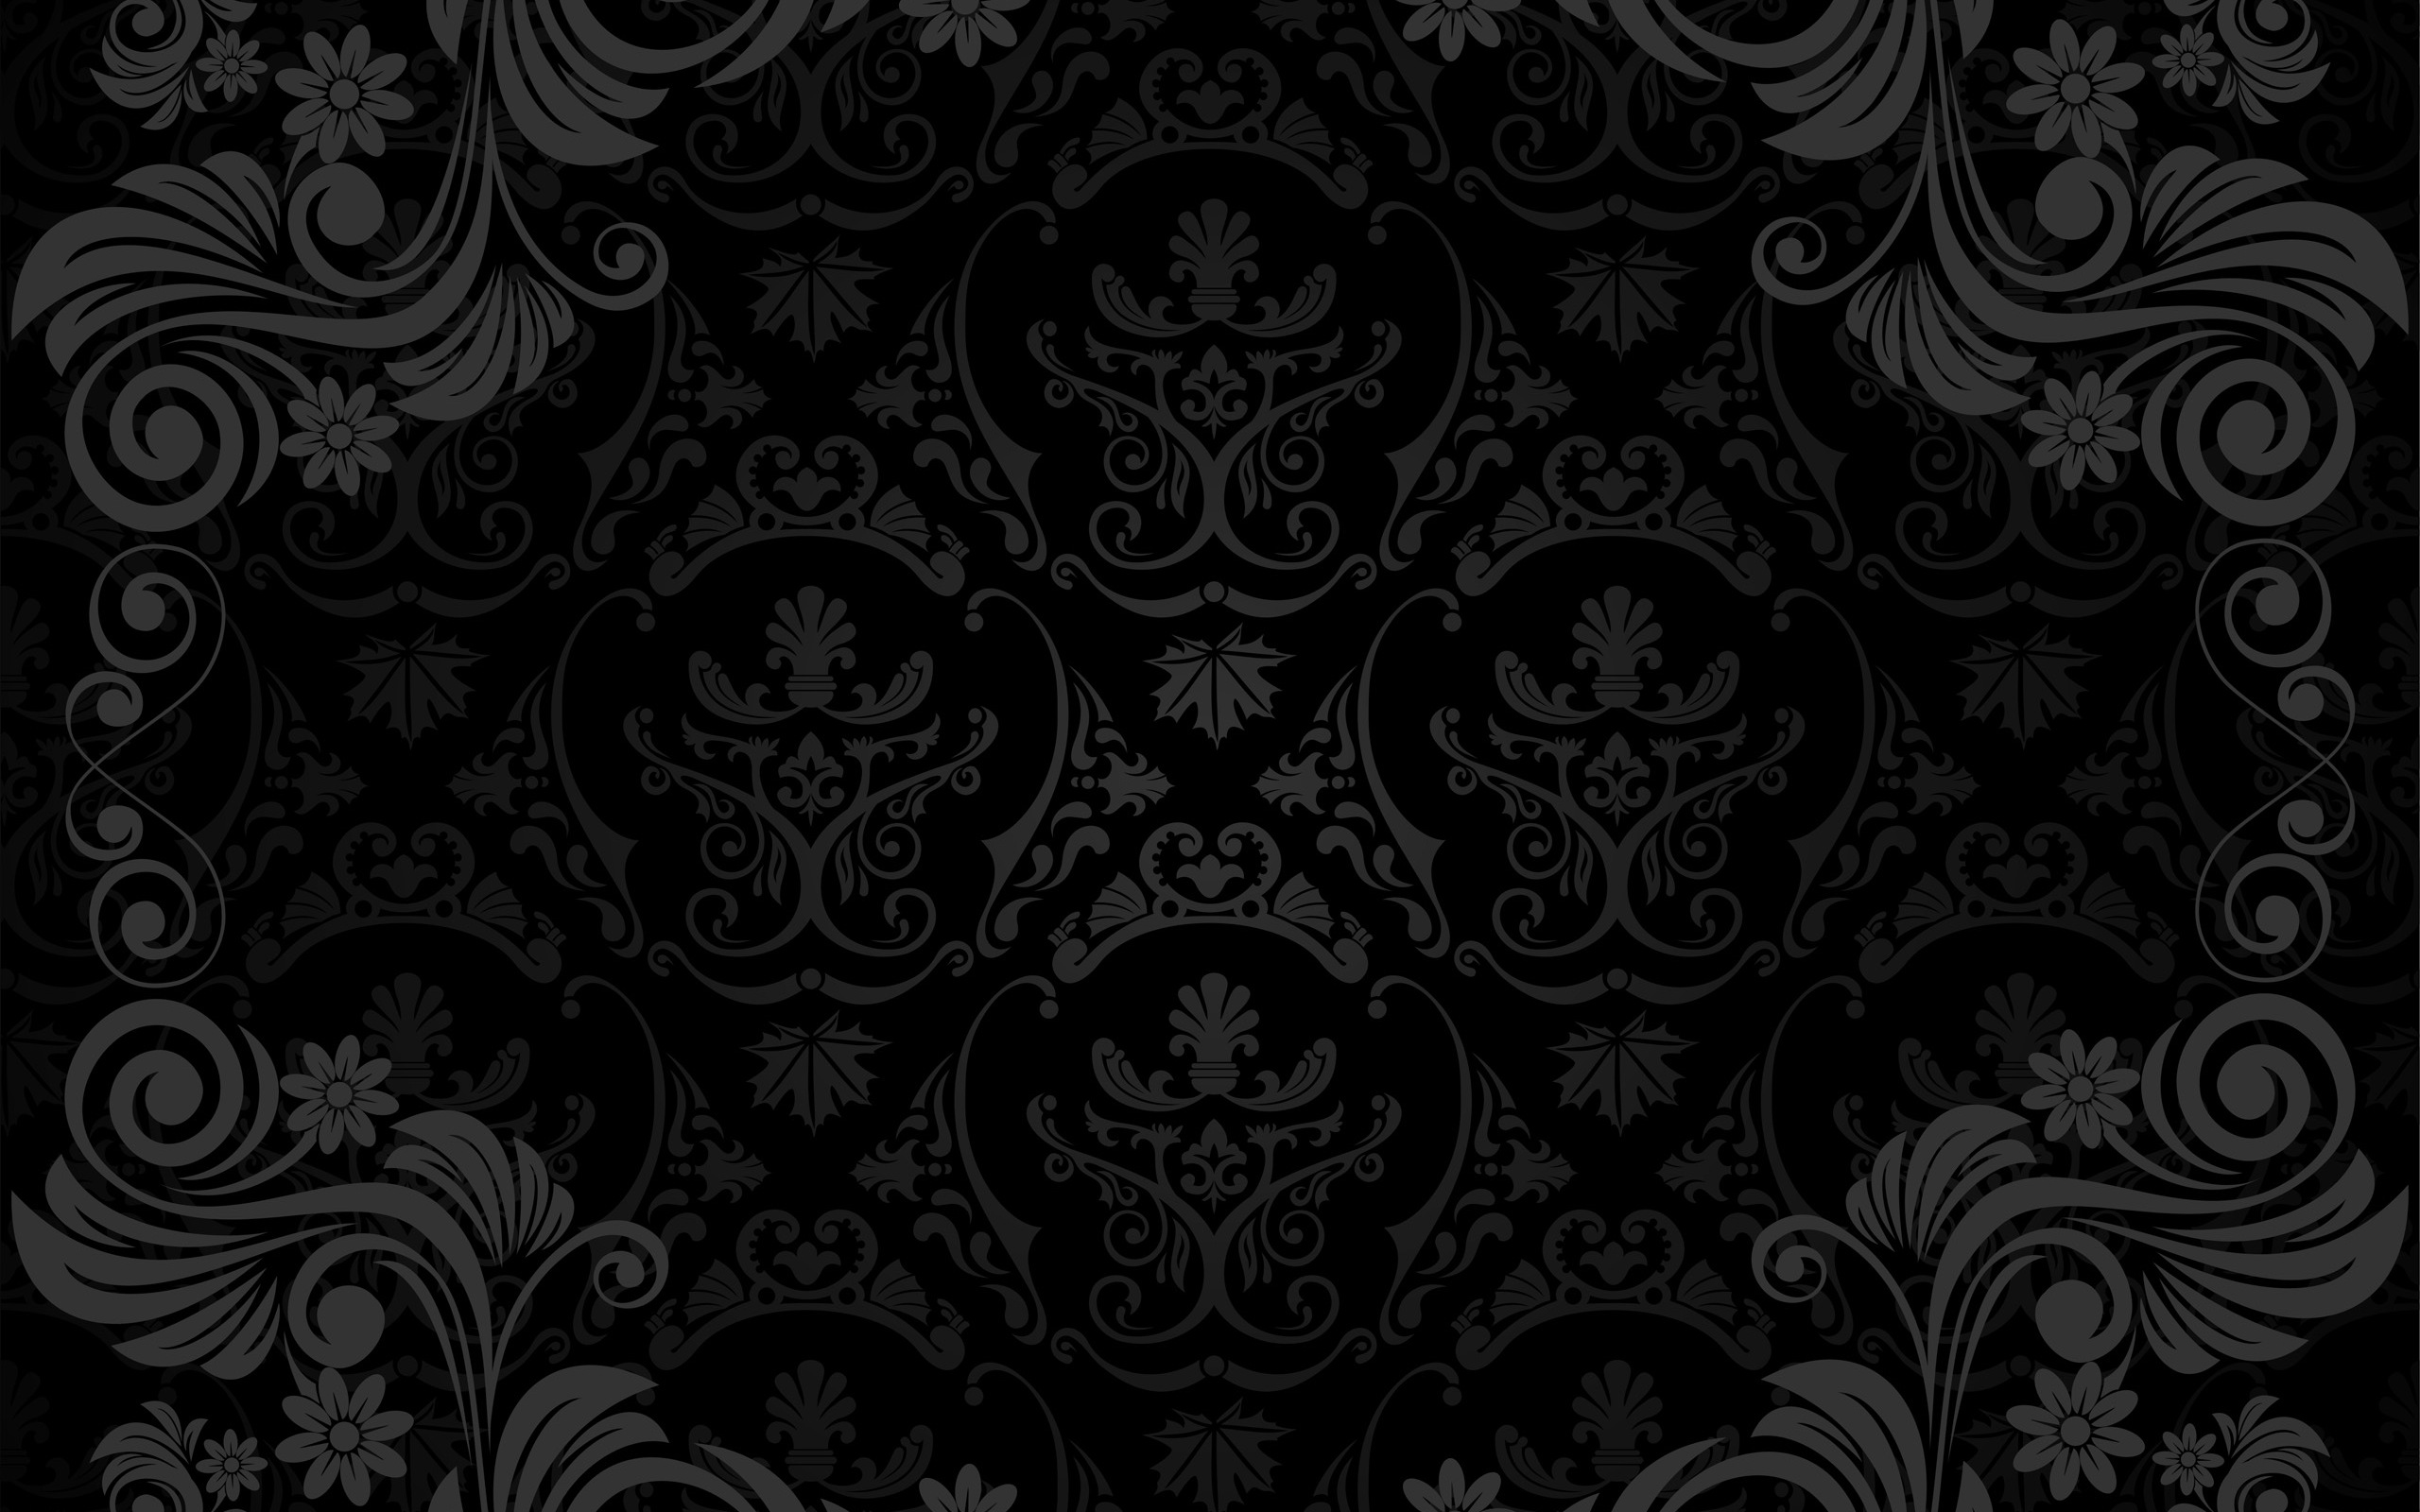 floral pattern ipad wallpaper gallery